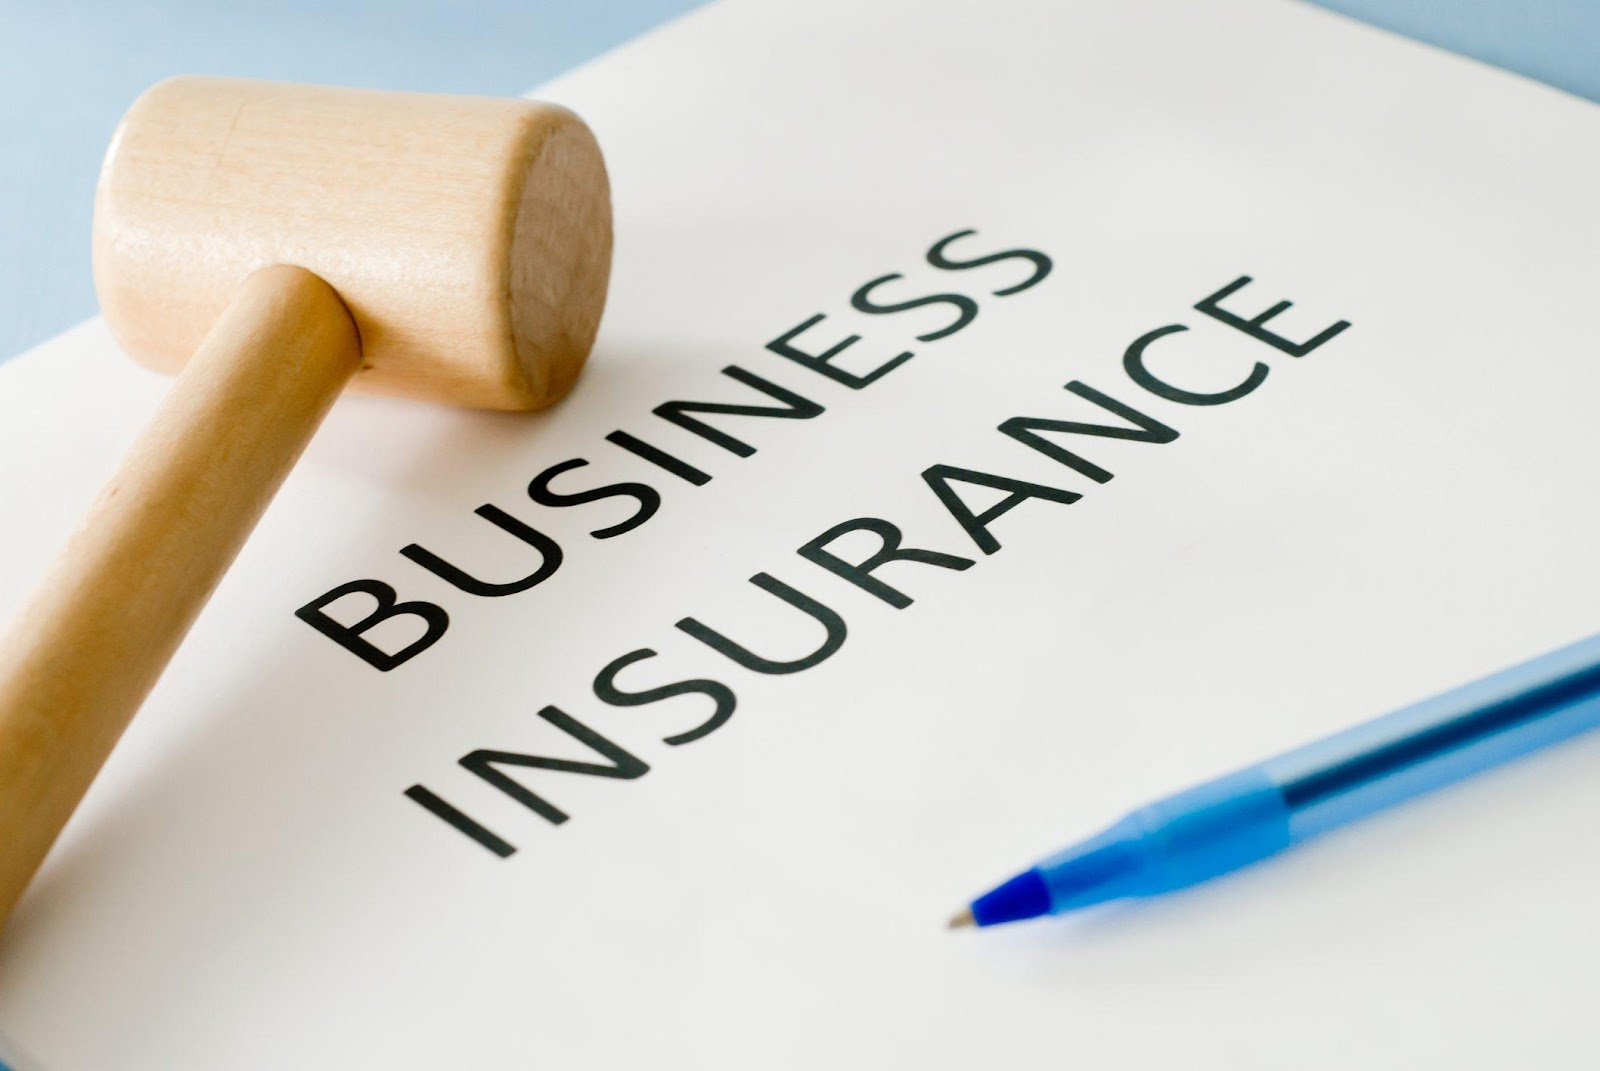 C:\Users\Stefan\Downloads\Why-business-insurance-coverage-is-required.jpg